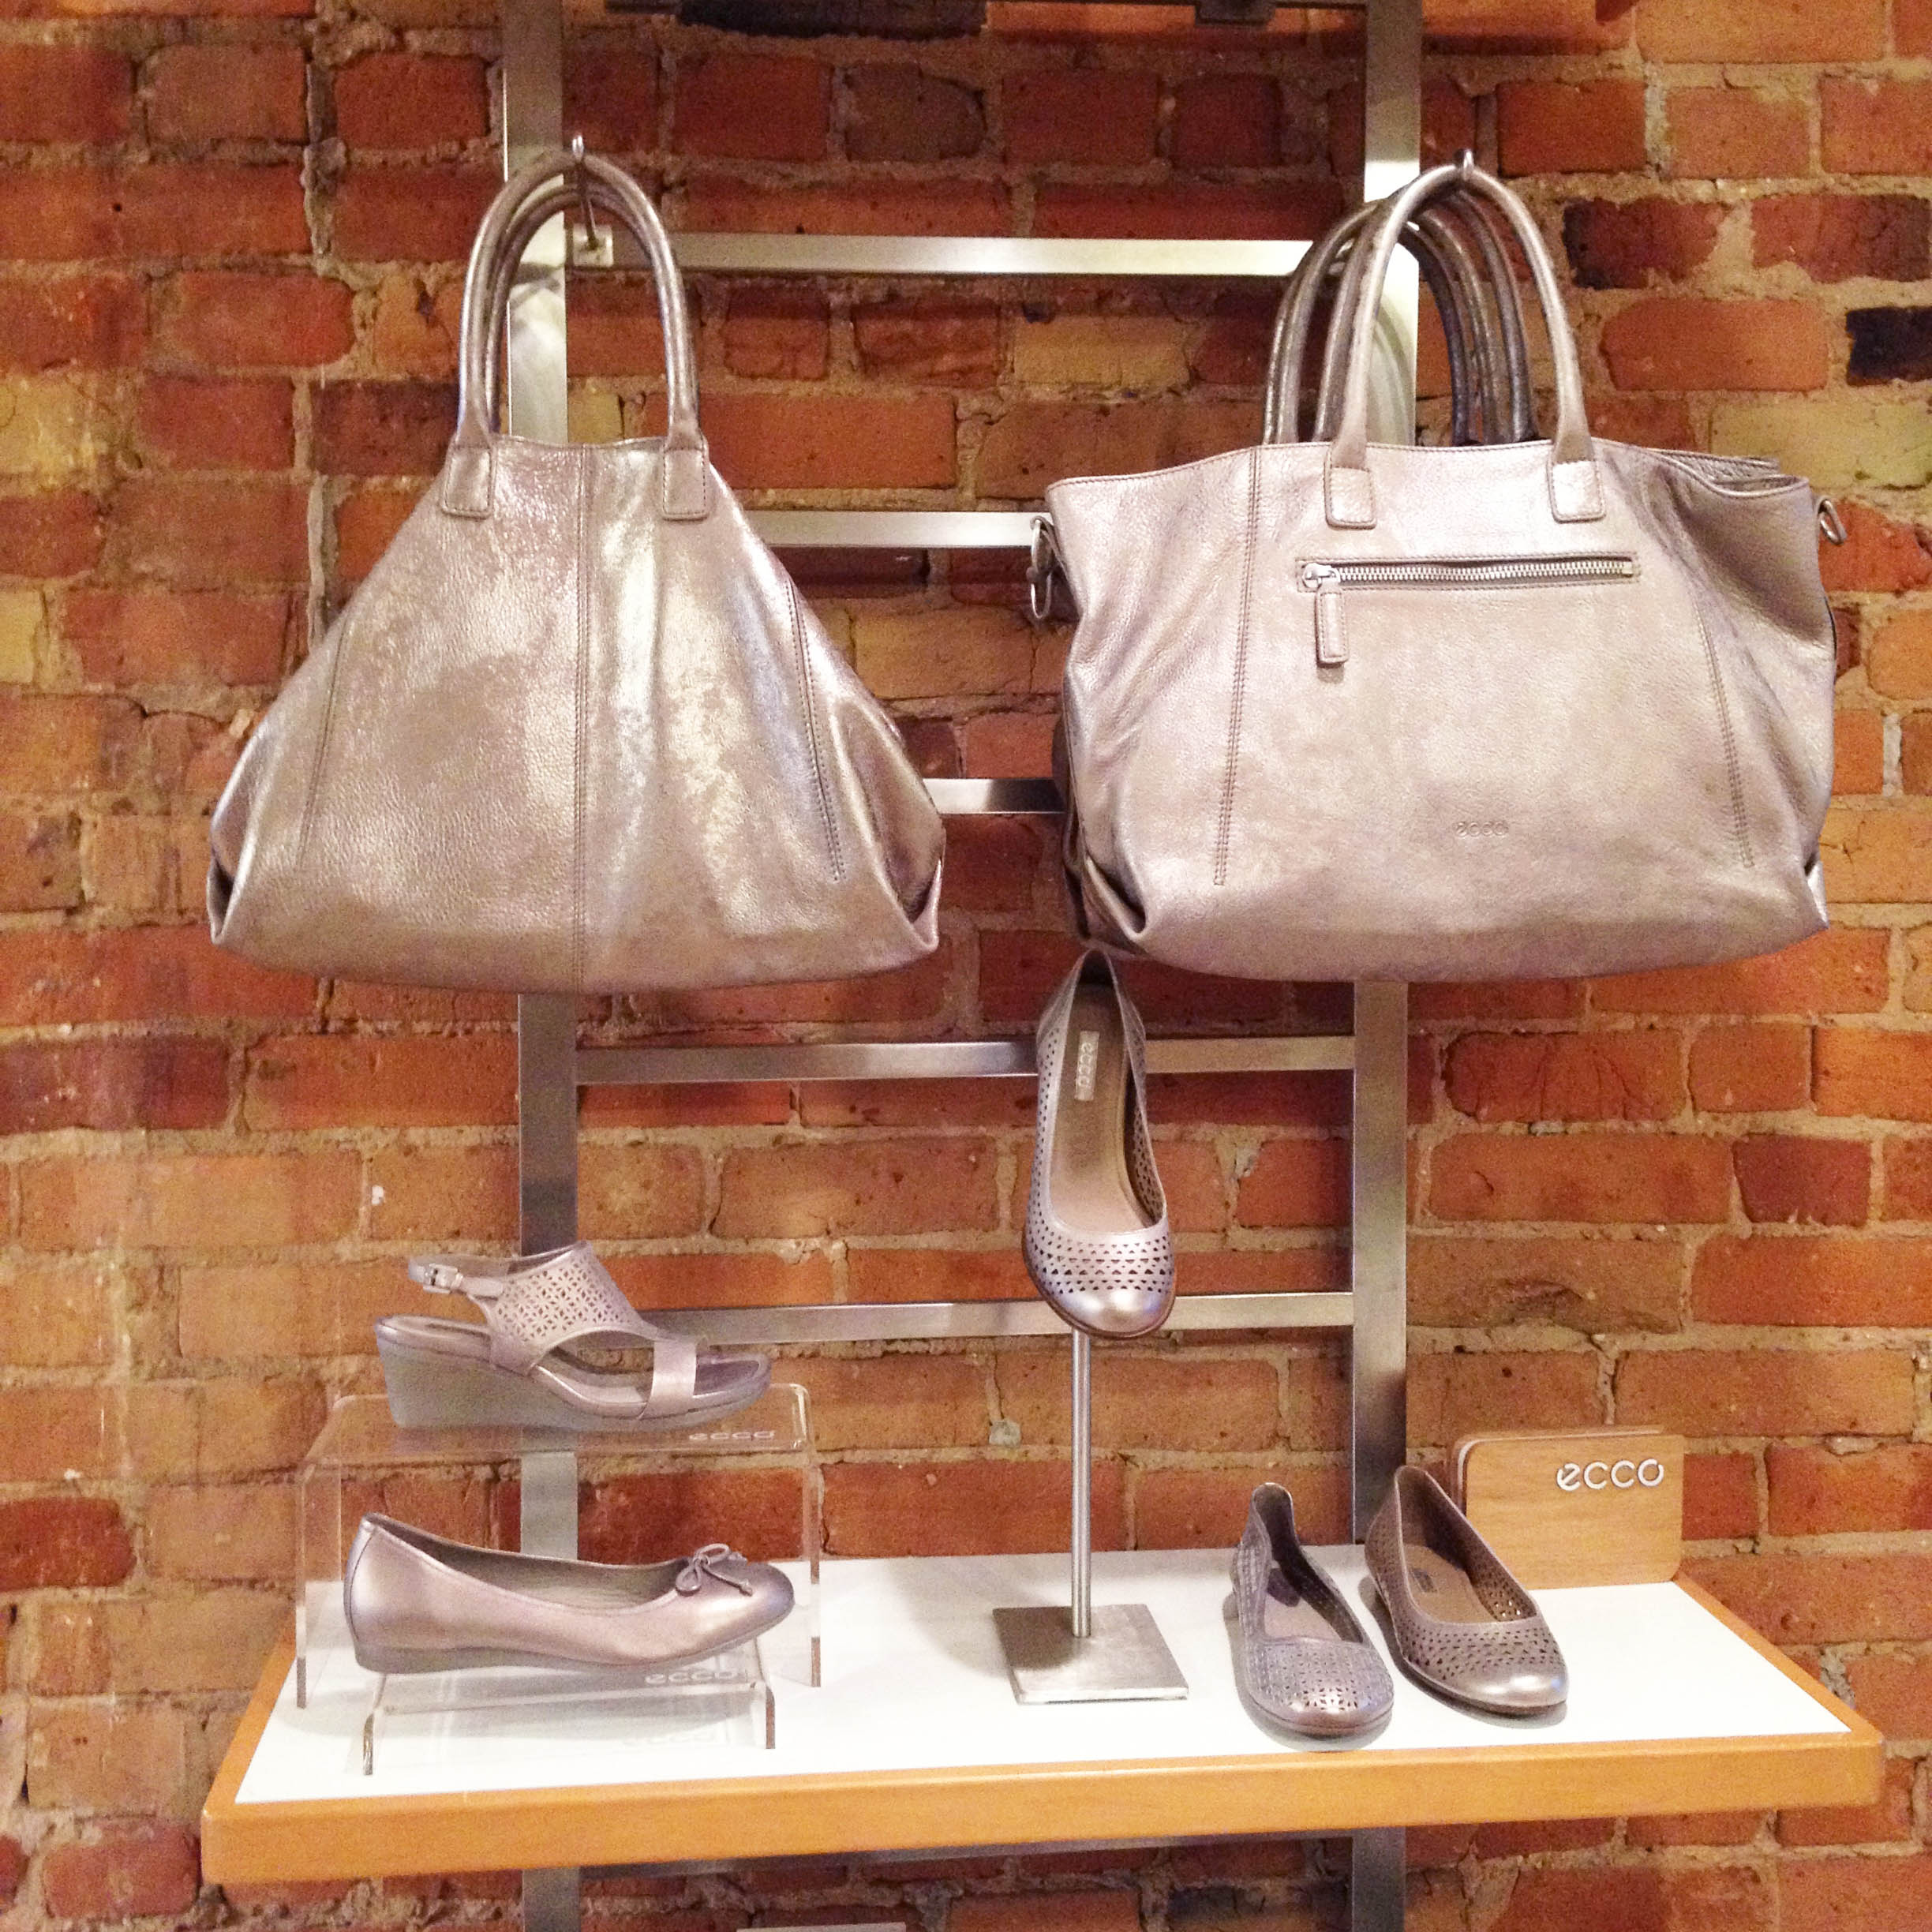 ecco_metallic_shoes_handbags_leather_accessories